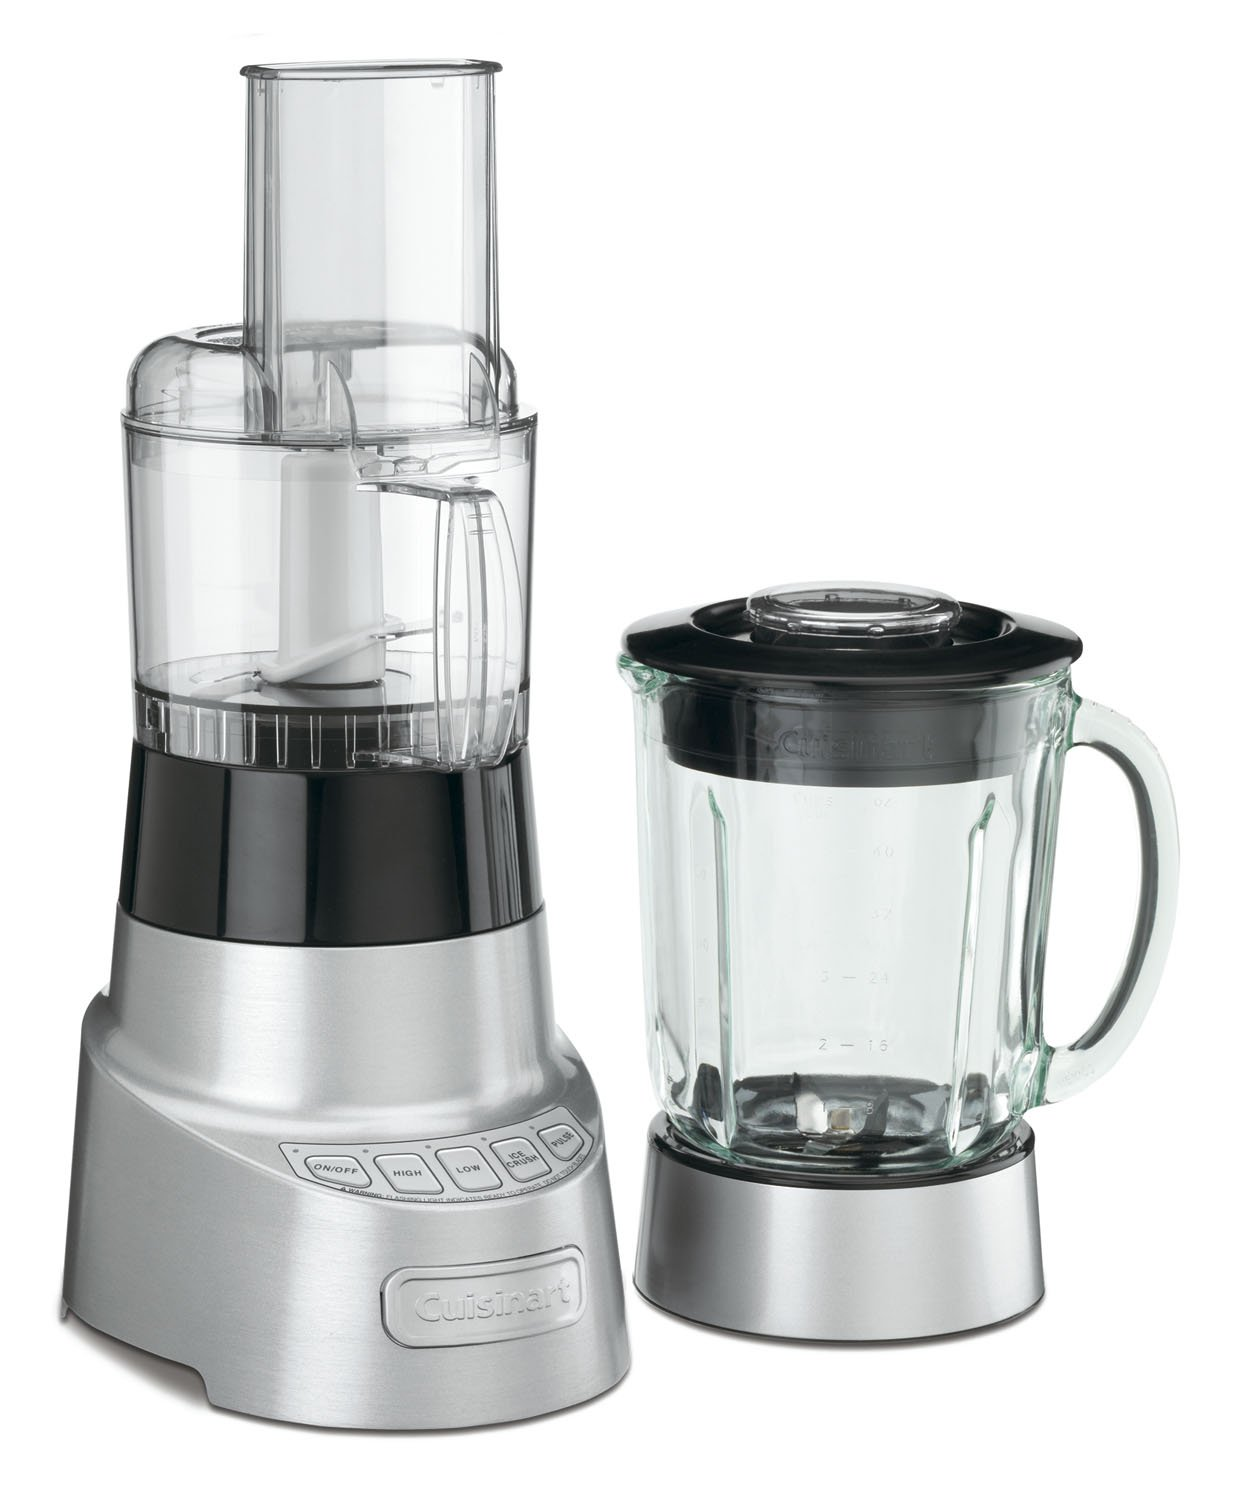 Dual Juicer and Blender appliance